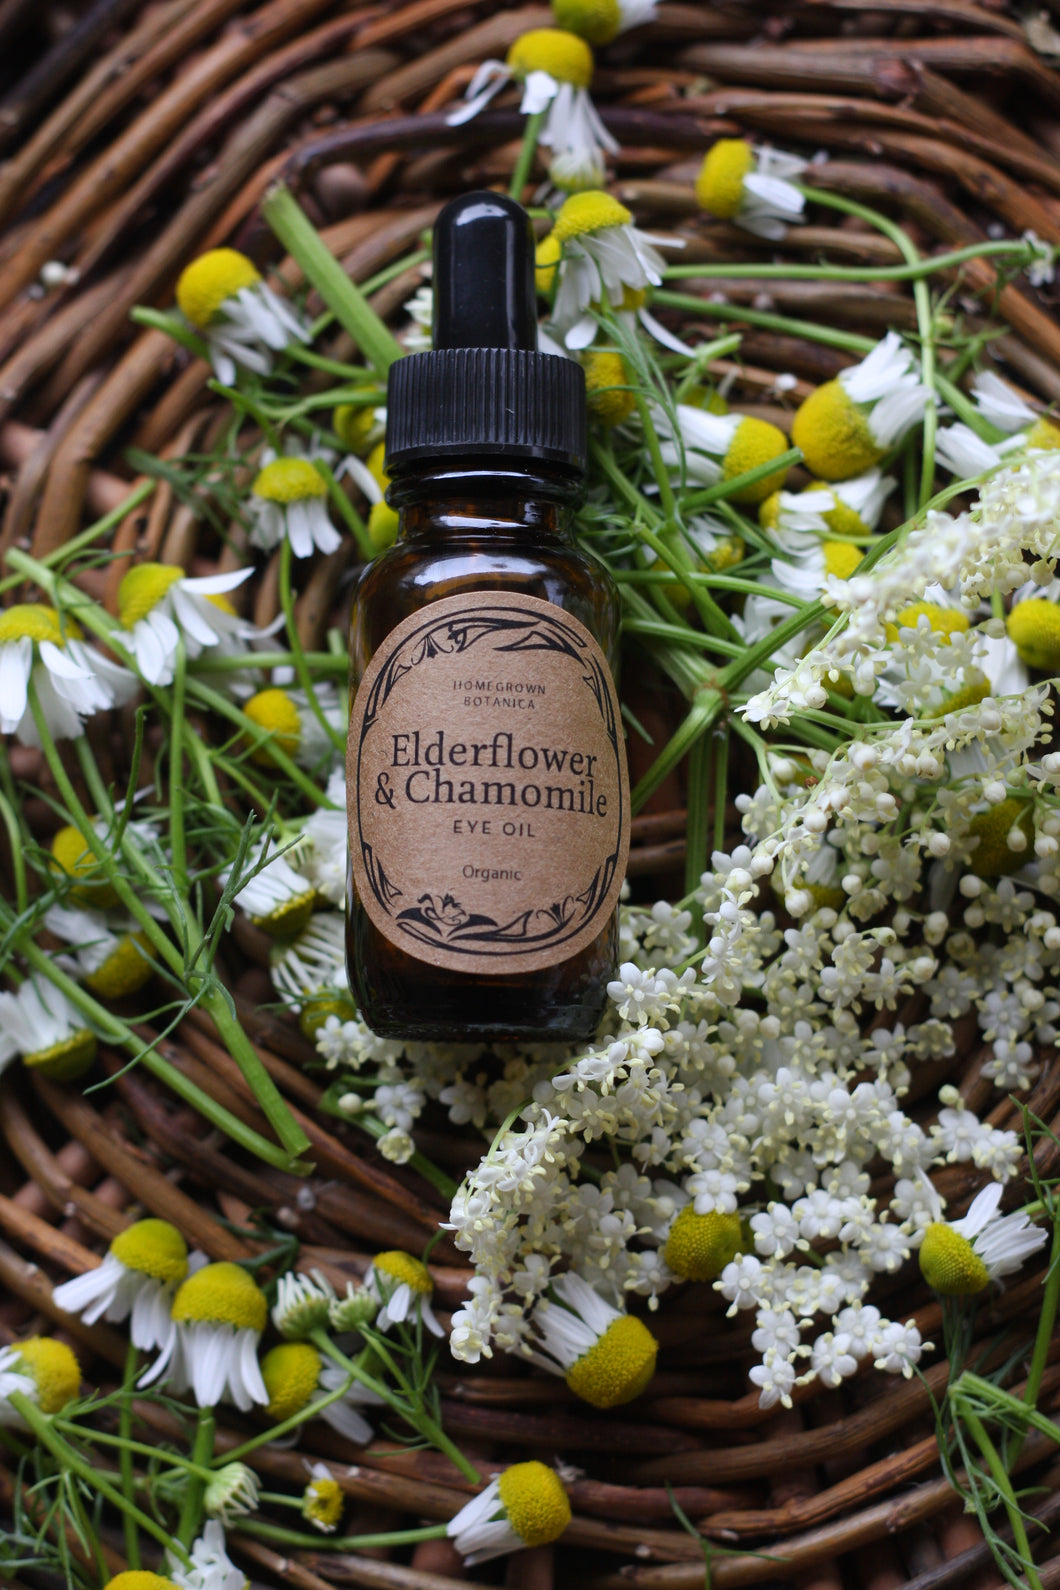 Elderflower & Chamomile Delicate Eye Oil